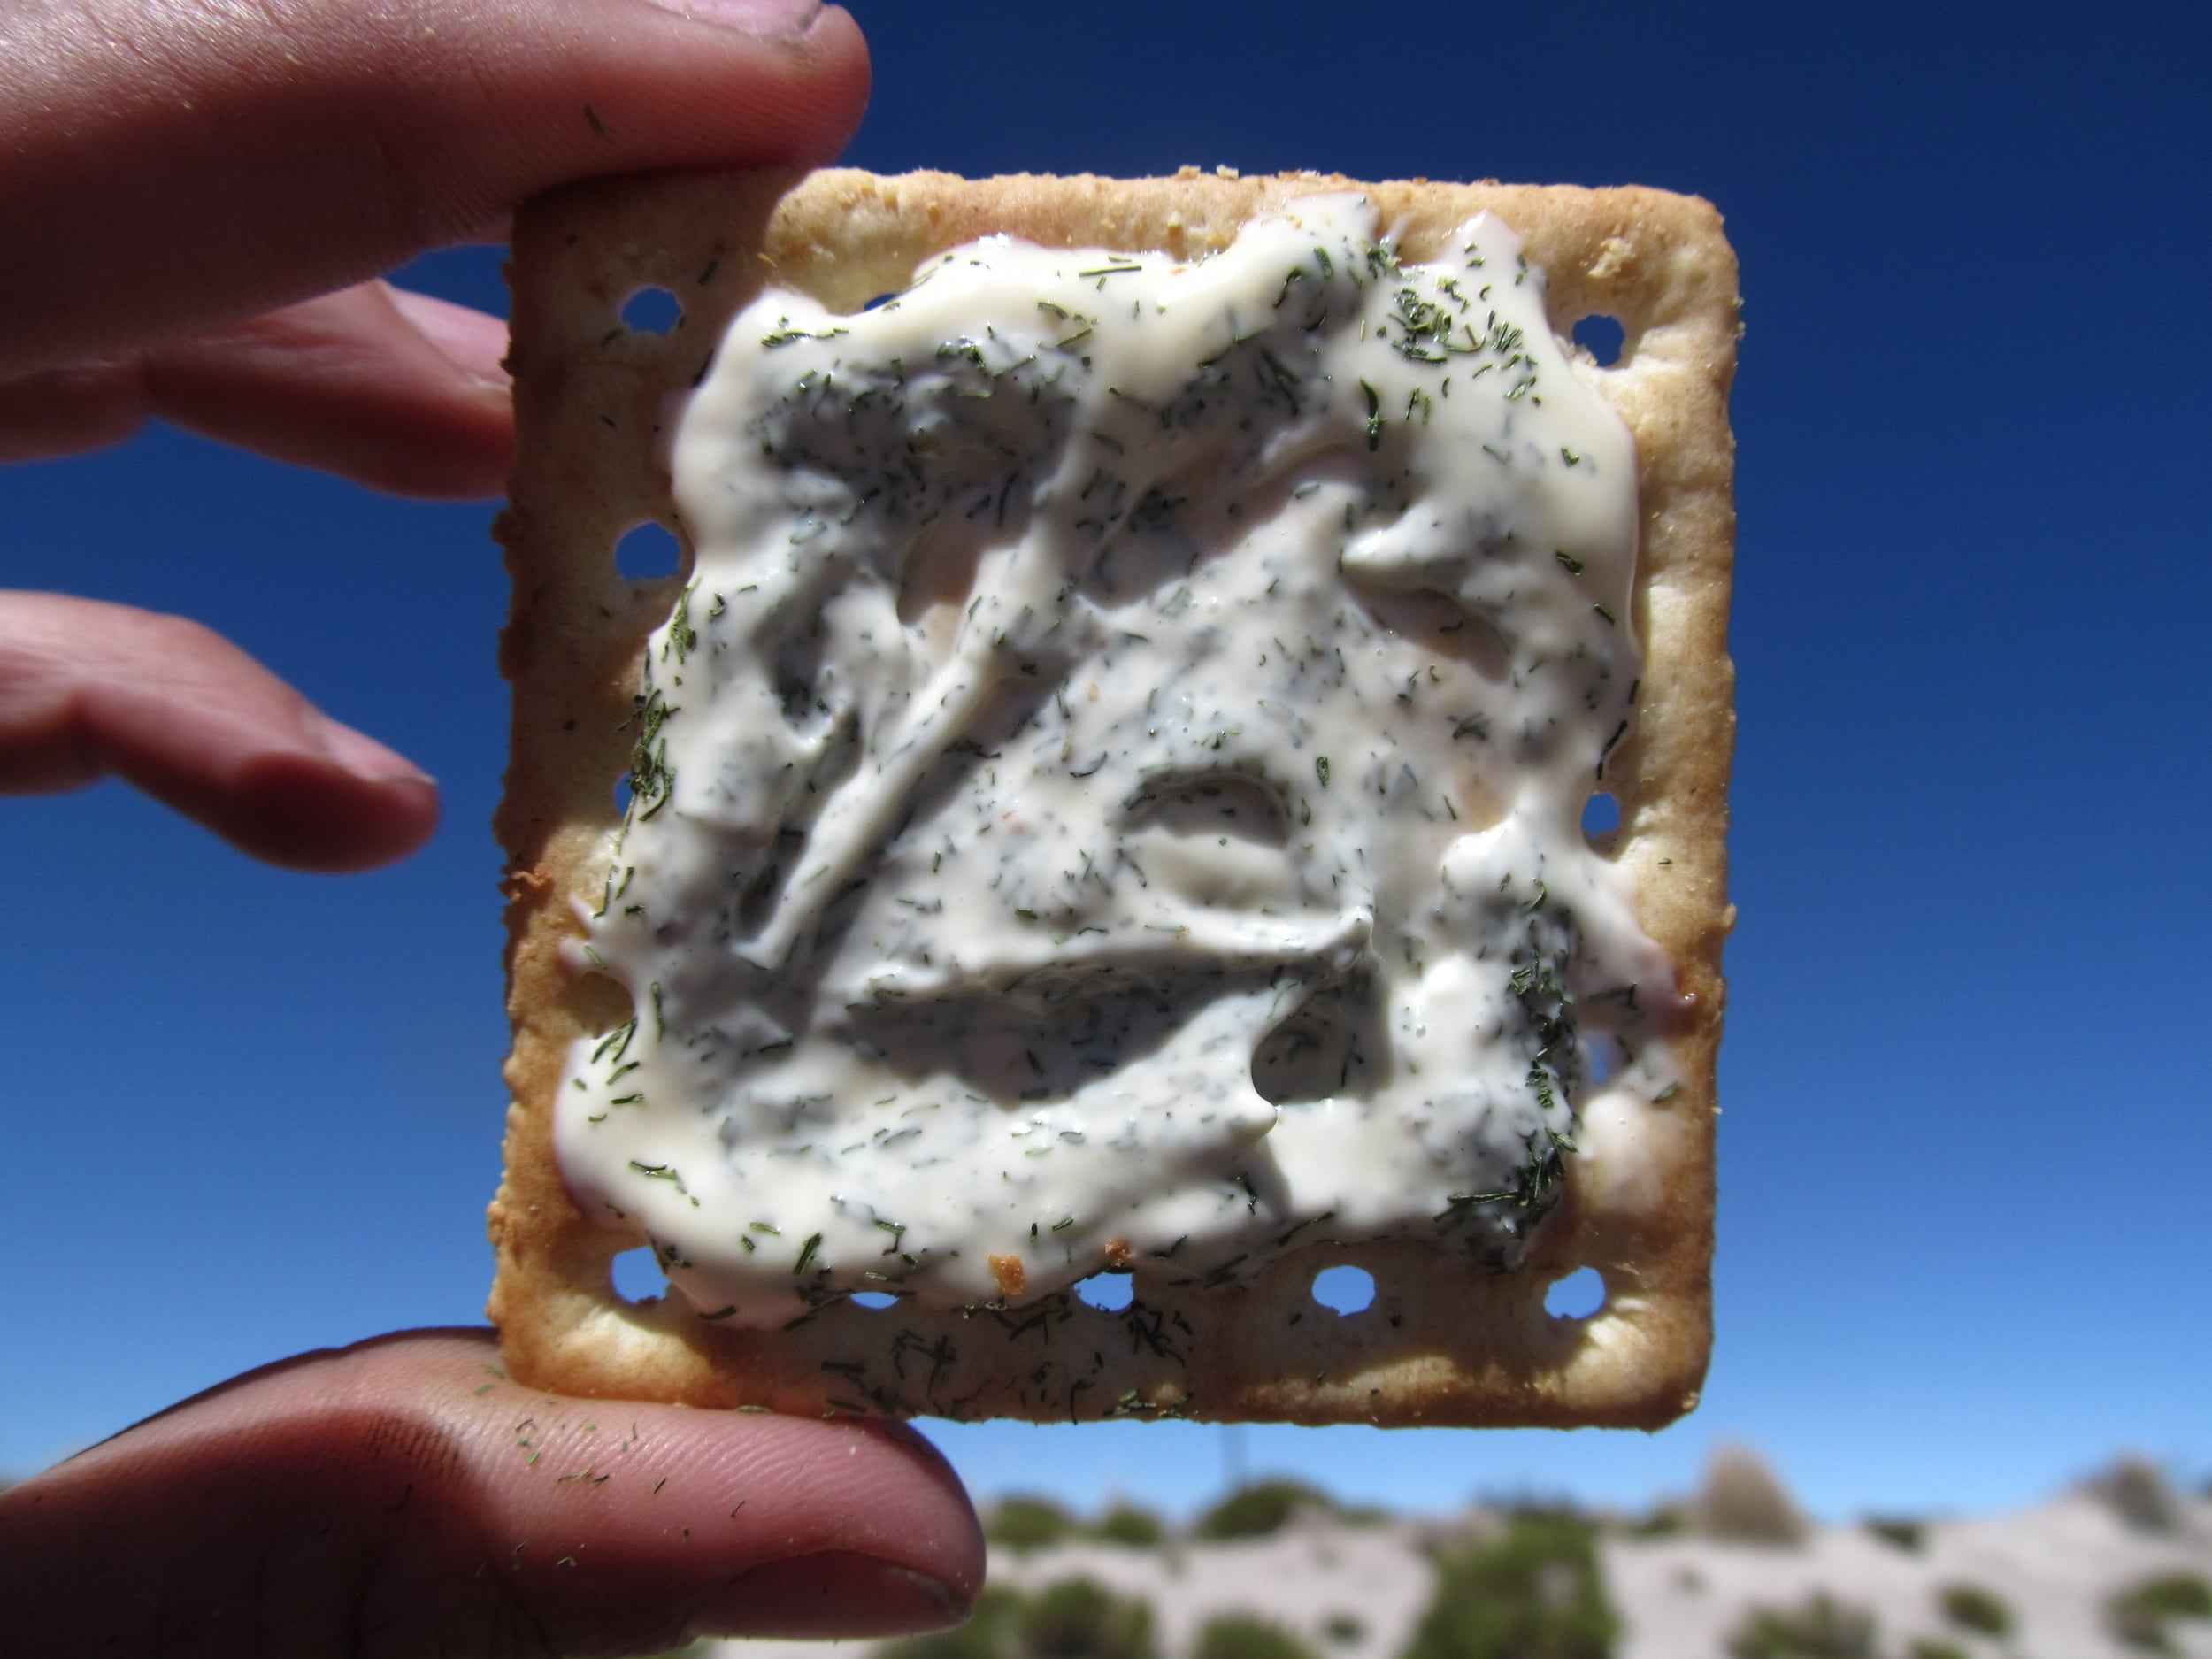 My personal favorite cracker meal: cracker, mayo, and dill.